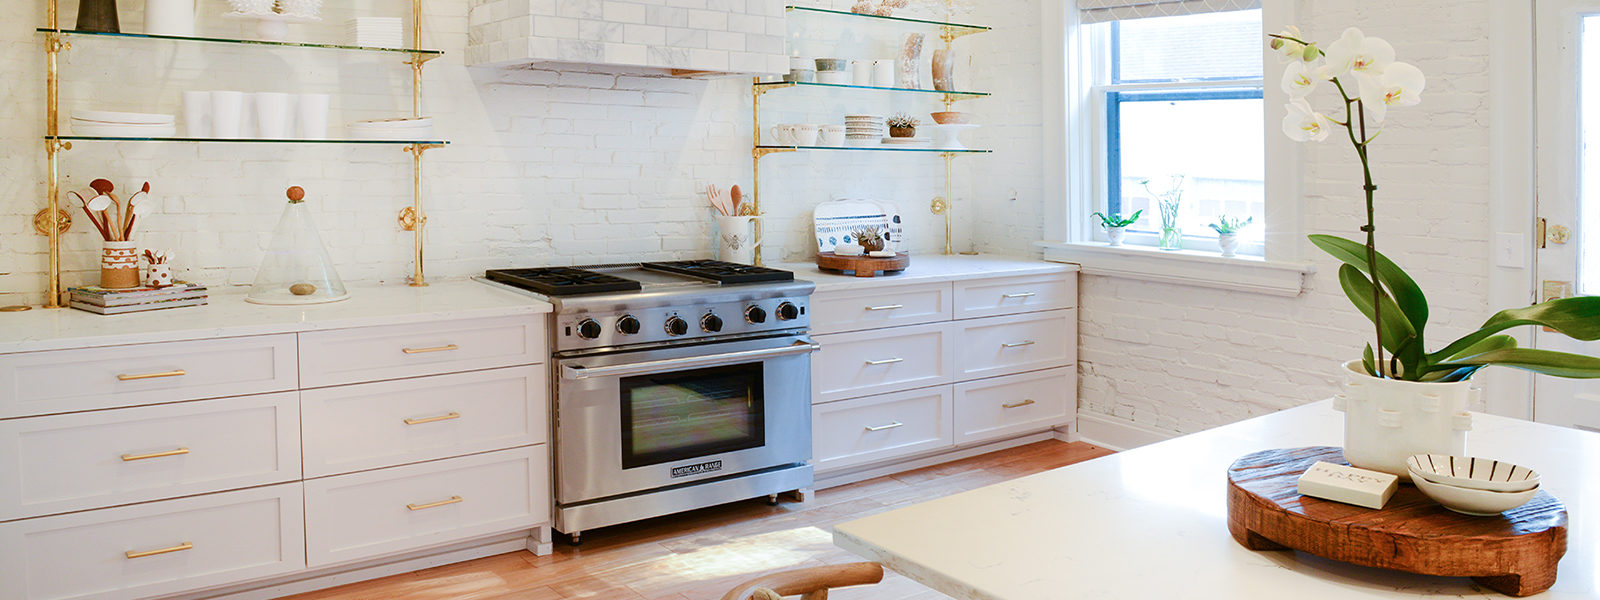 What is the best countertop option for you, granite or quartz?